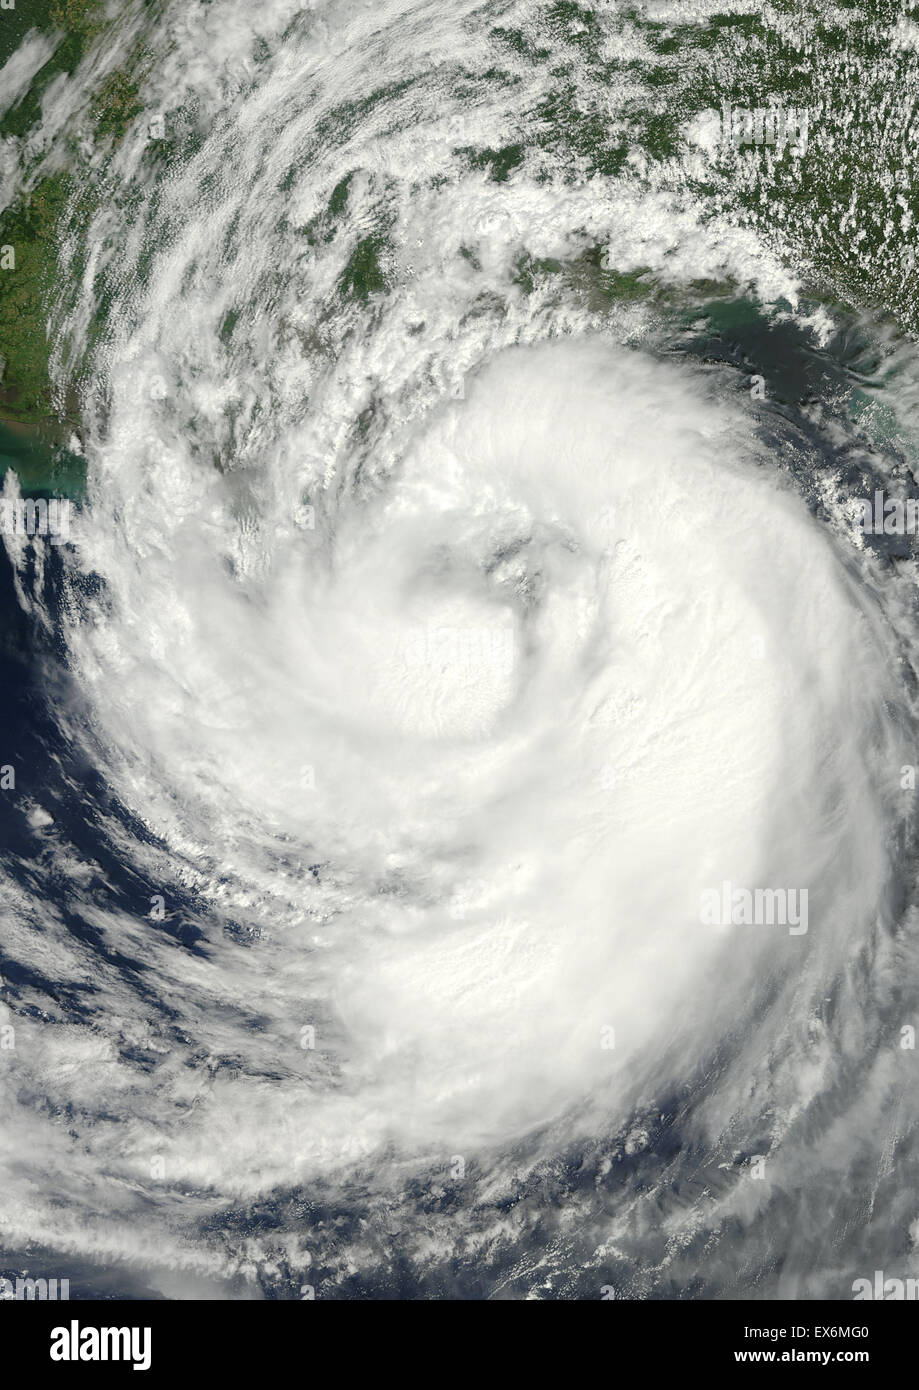 Satellite view of Hurricane Isaac over the Atlantic Ocean. Image taken on August 28, 2012. - Stock Image